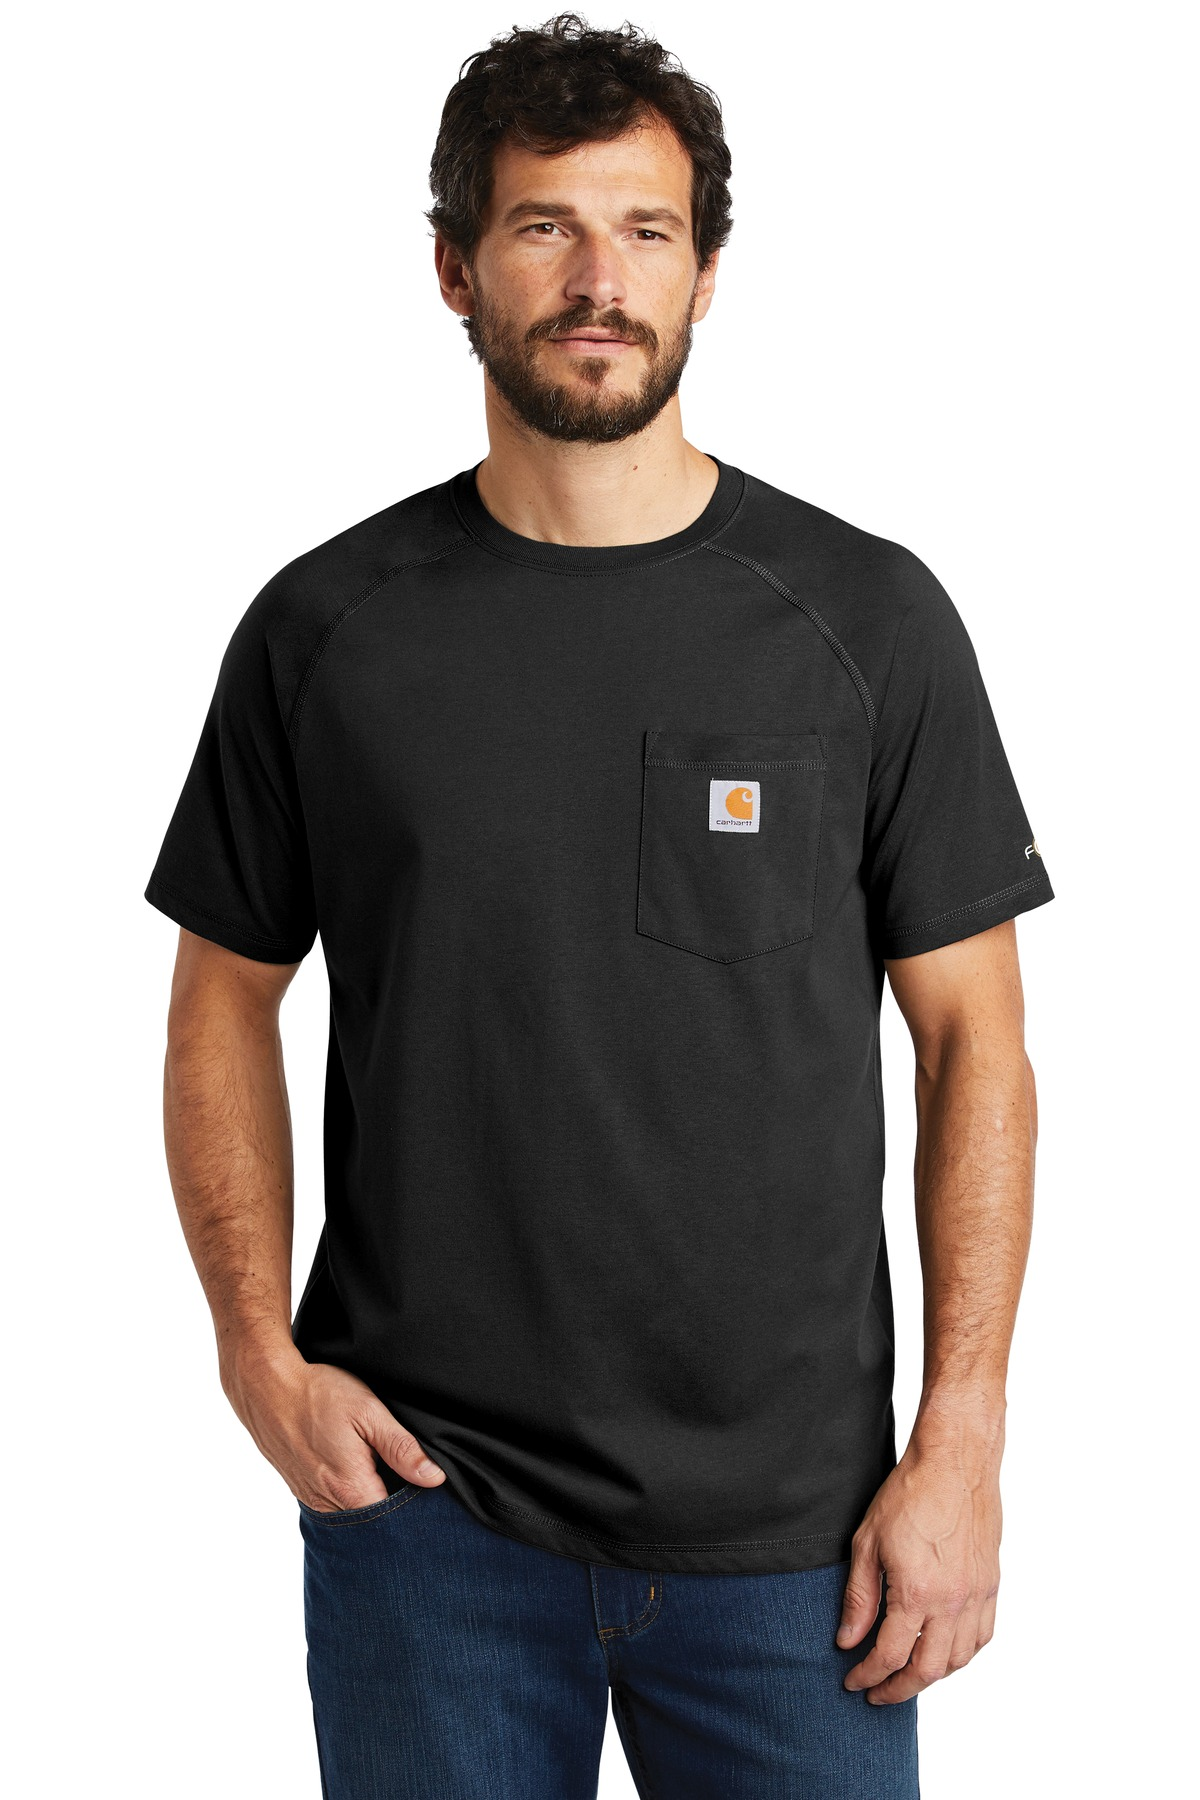 Carhartt Force  ®  Cotton Delmont Short Sleeve T-Shirt. CT100410 - Black